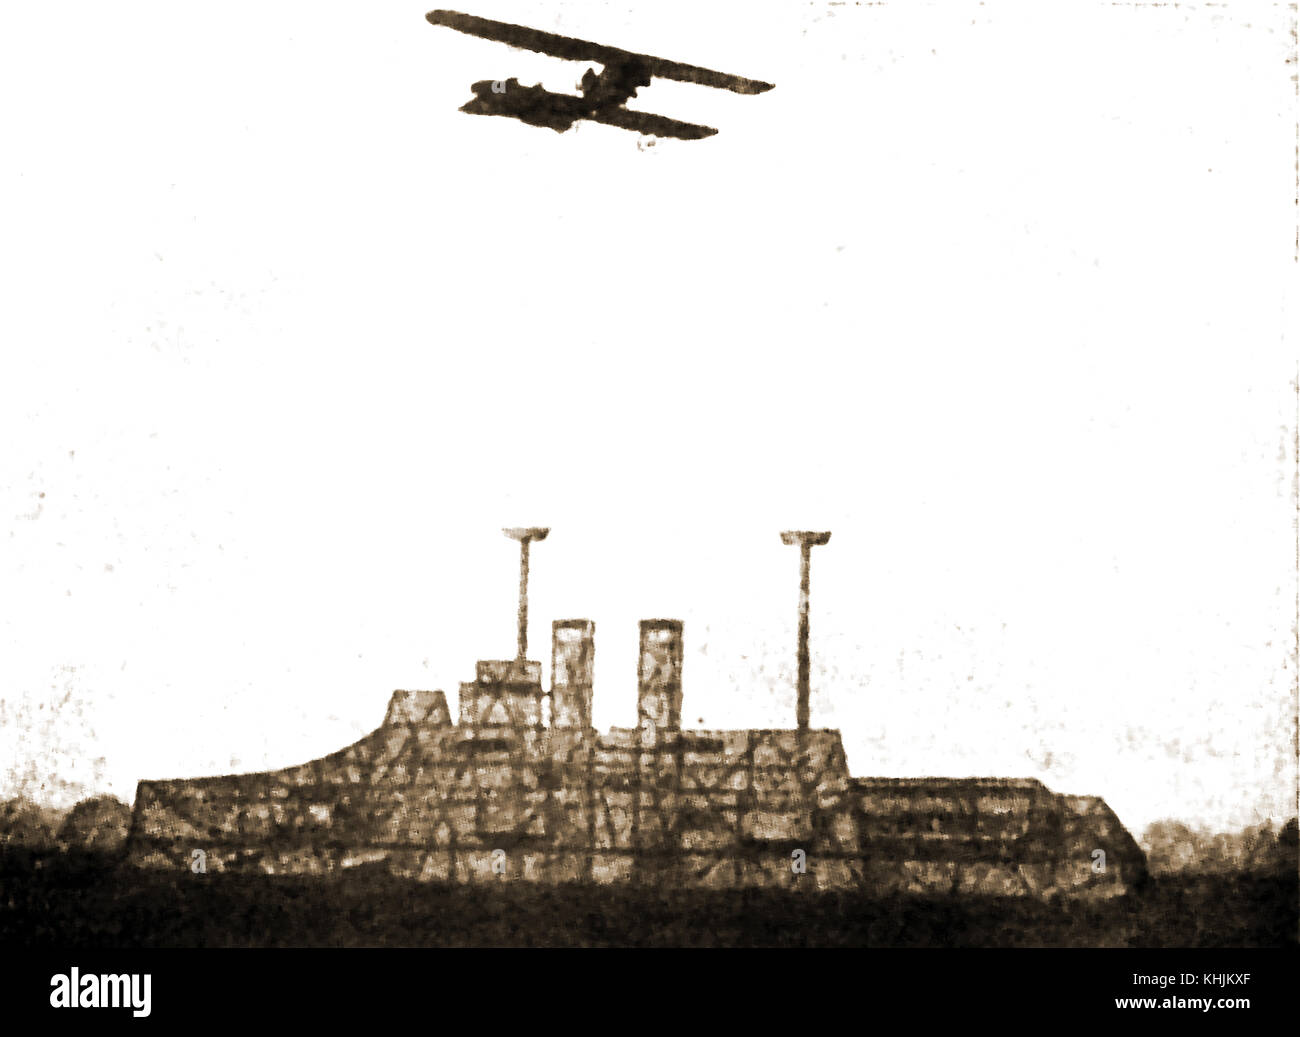 WWI  A German biplane practising bomb dropping on a wooden mock-up of a British Dreadnought battleship (From a German Stock Photo